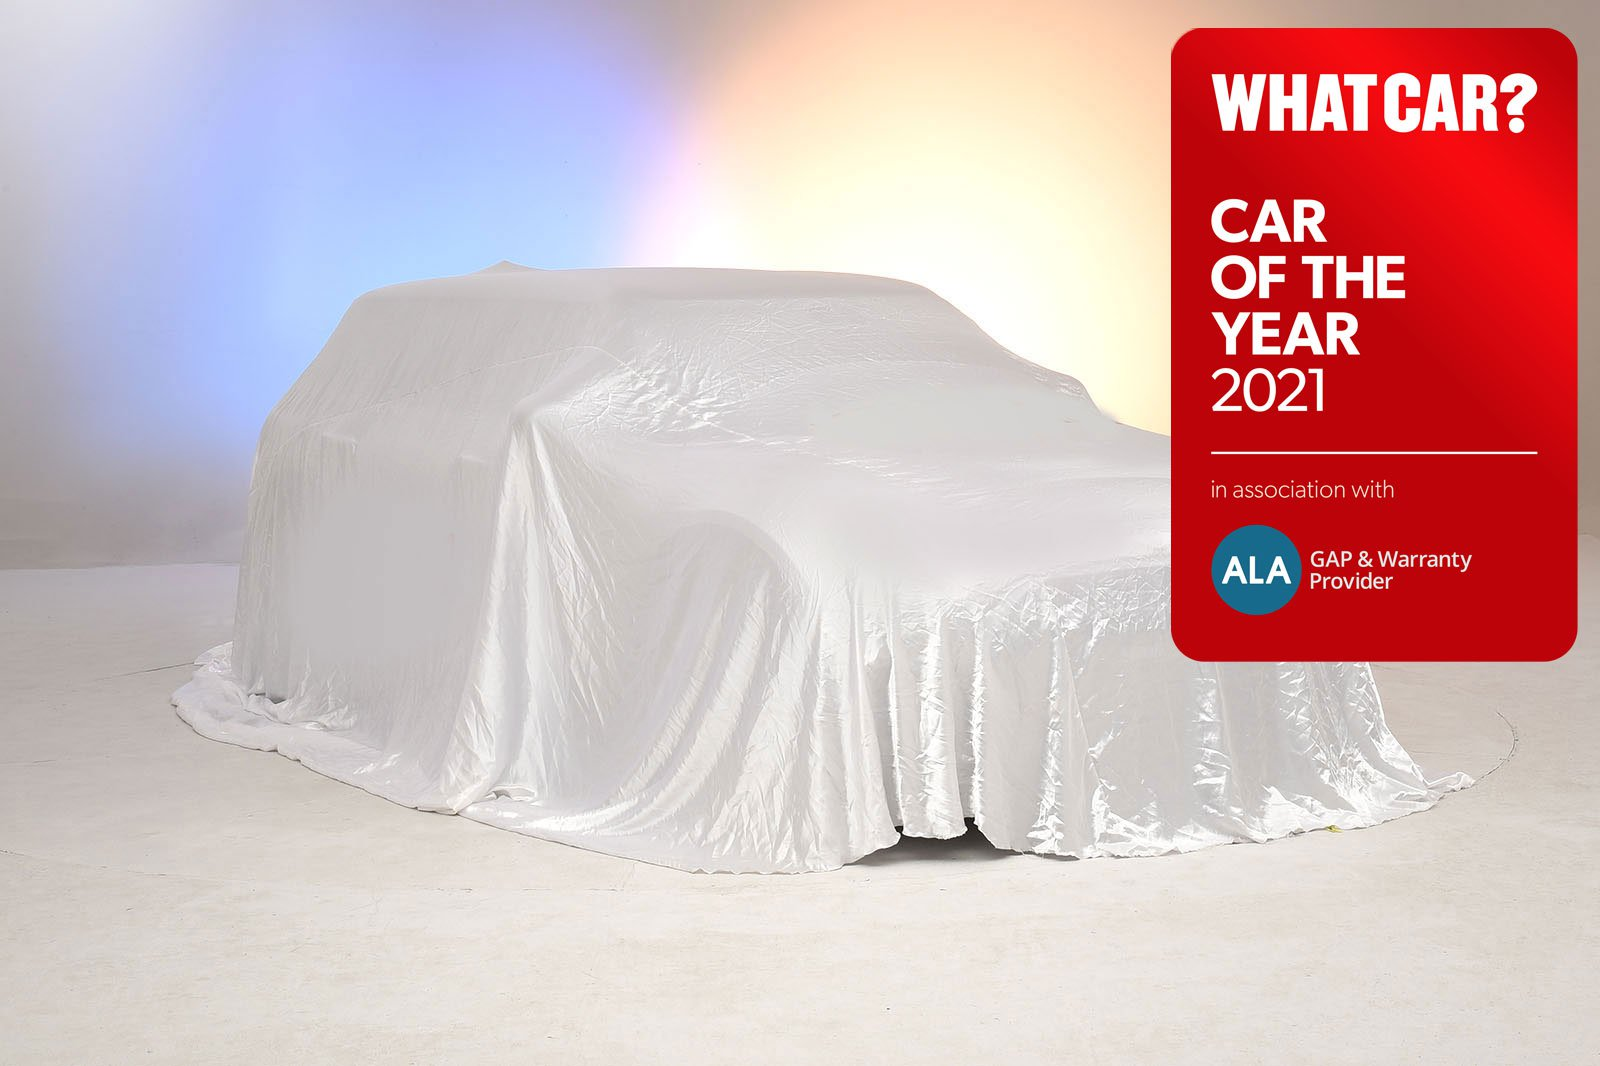 What Car? Car of the Year Awards 2021 car with logo